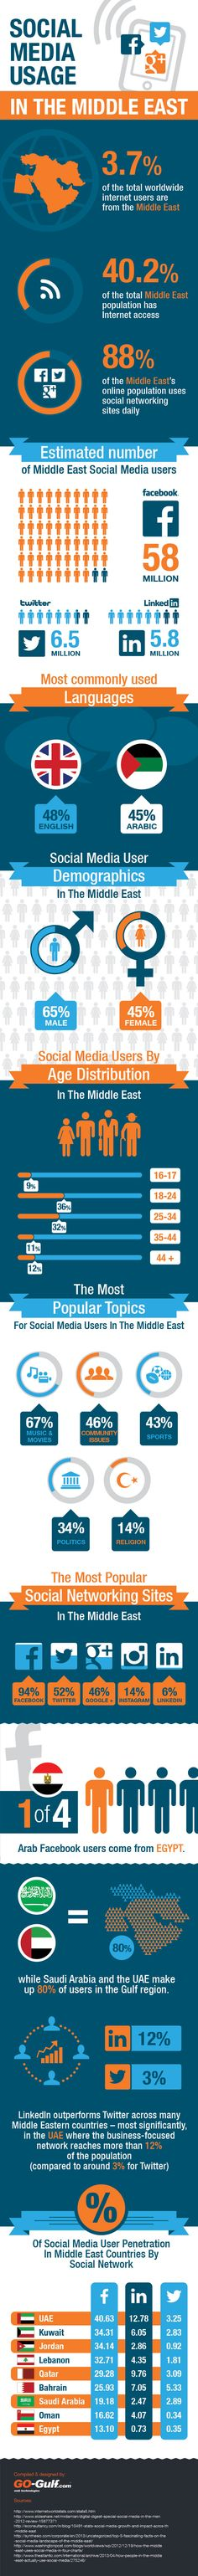 Facts, Figures & Statistics - Social Media Usage In The Middle East [INFOGRAPHIC] #MENA